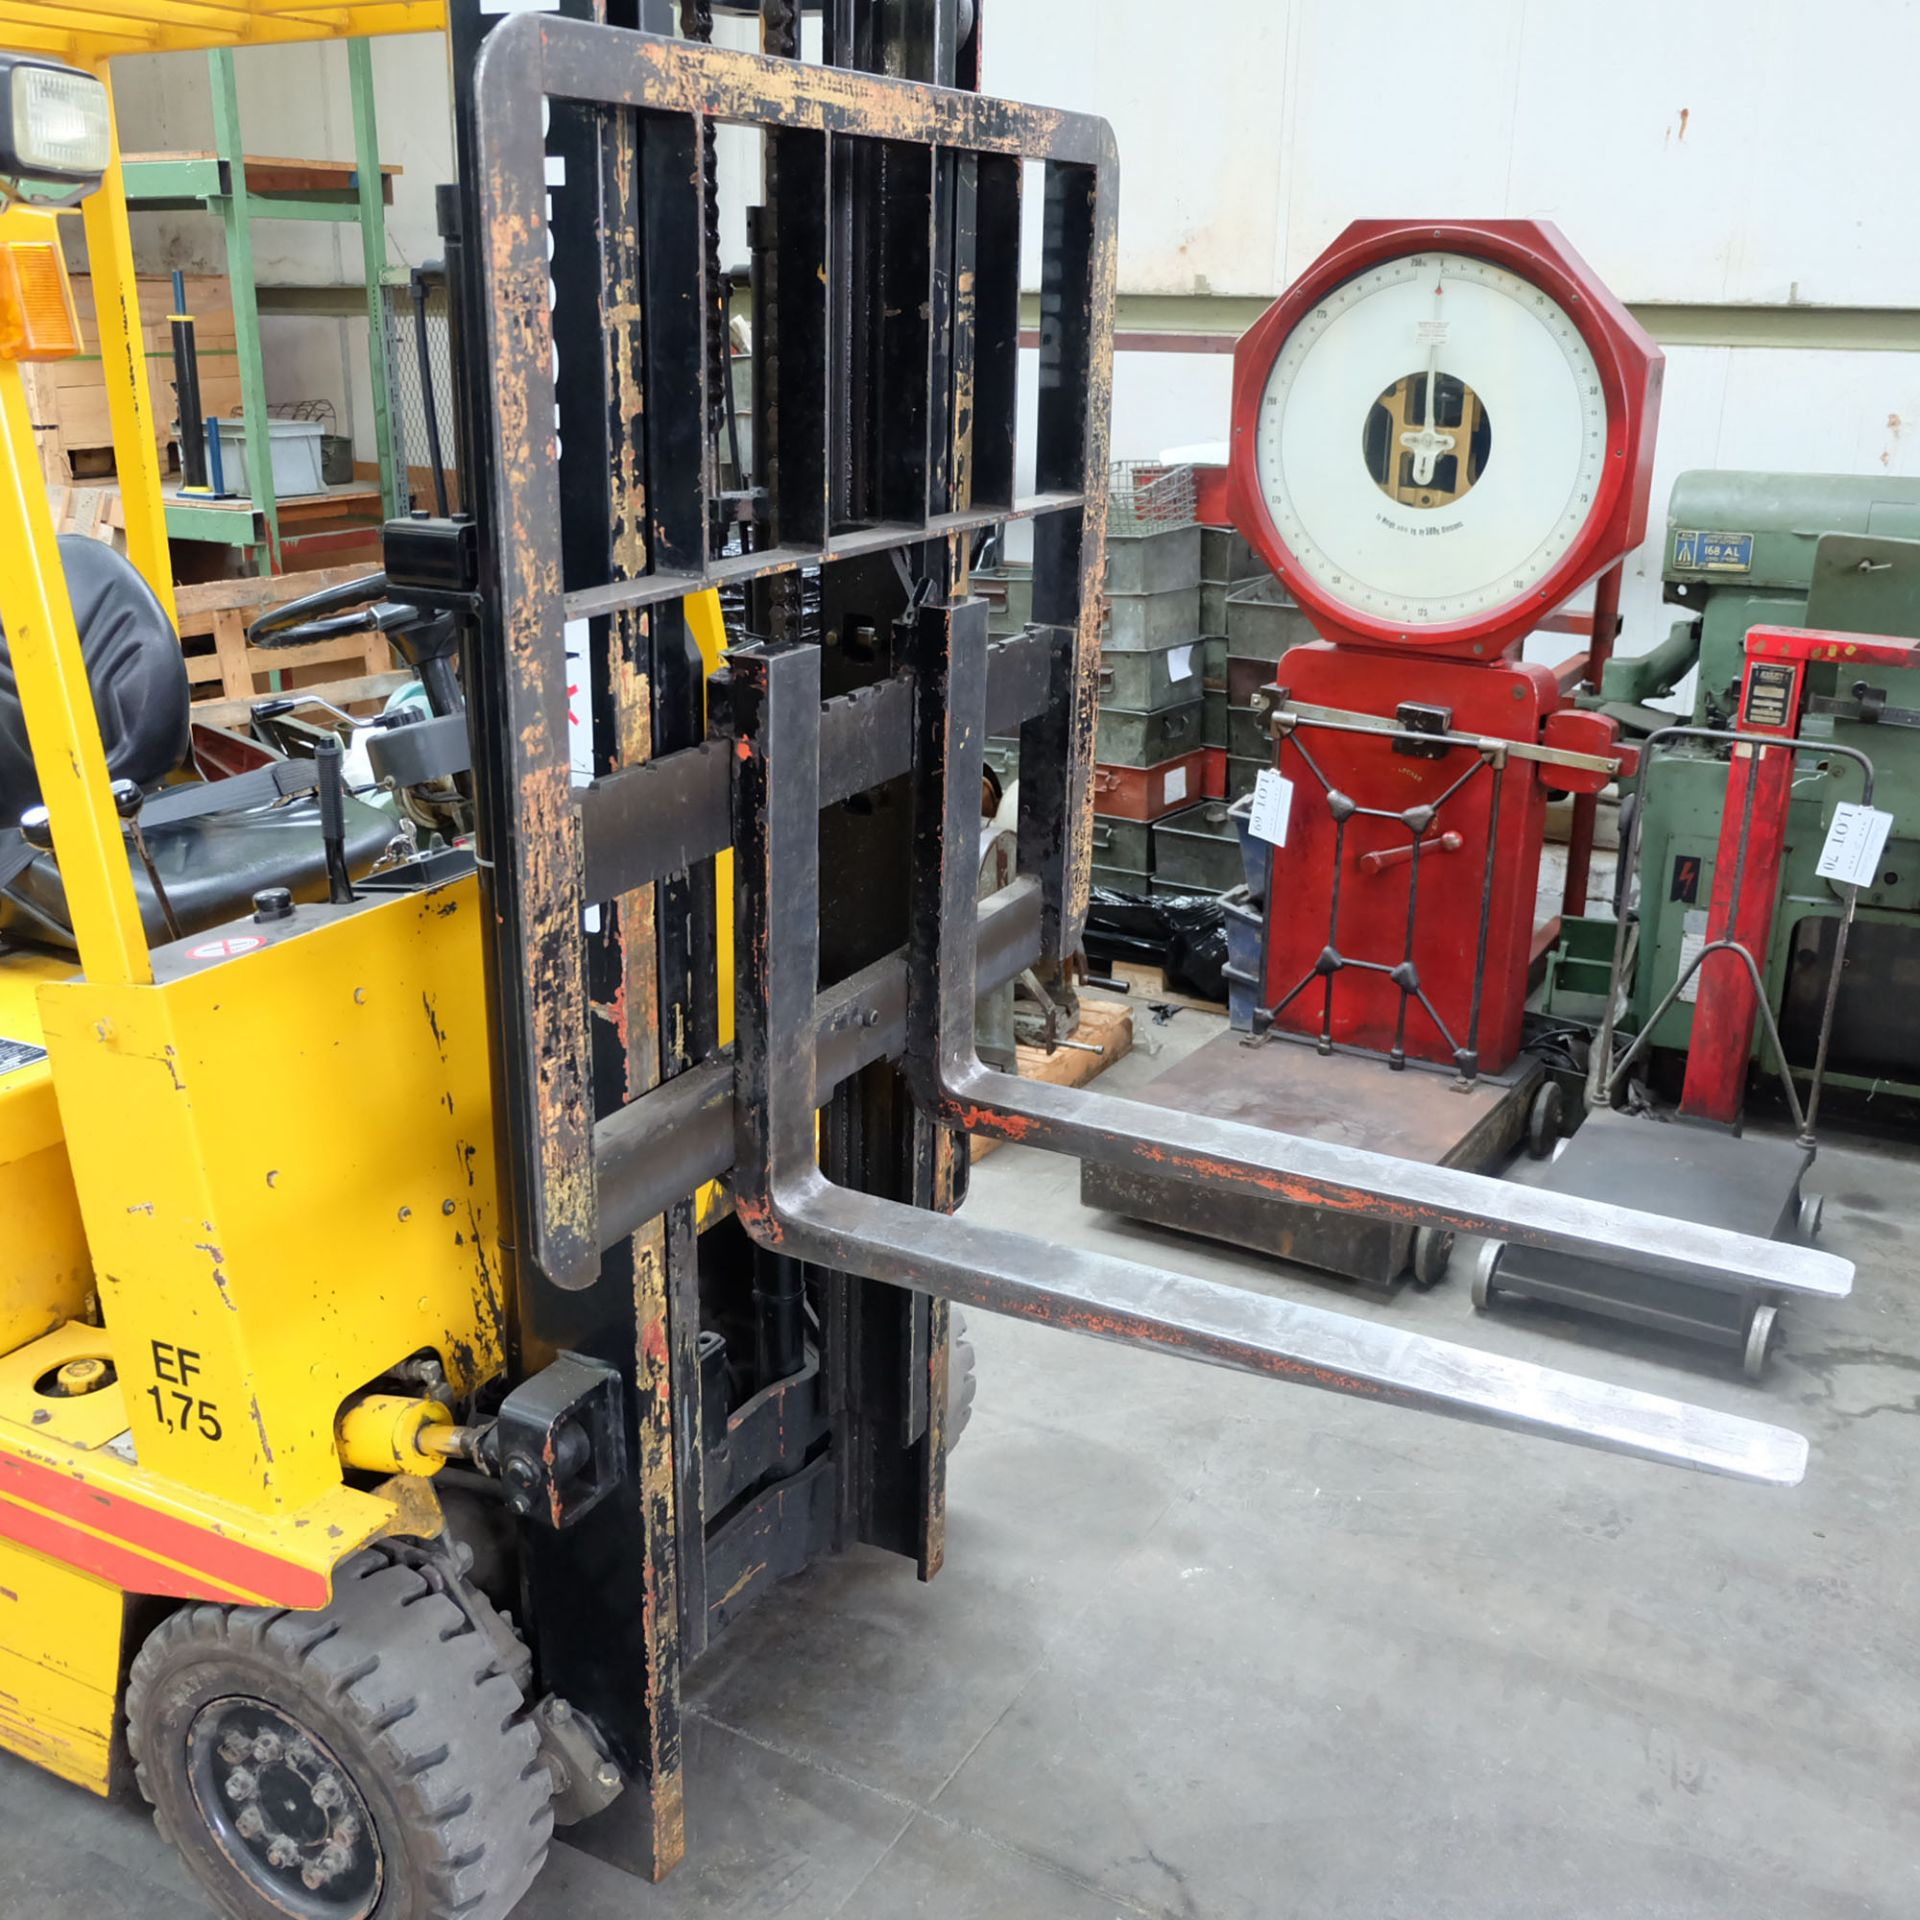 Kalmar Model EF 1.75. Electric Fork Lift Truck With Battery Charger - Image 5 of 10